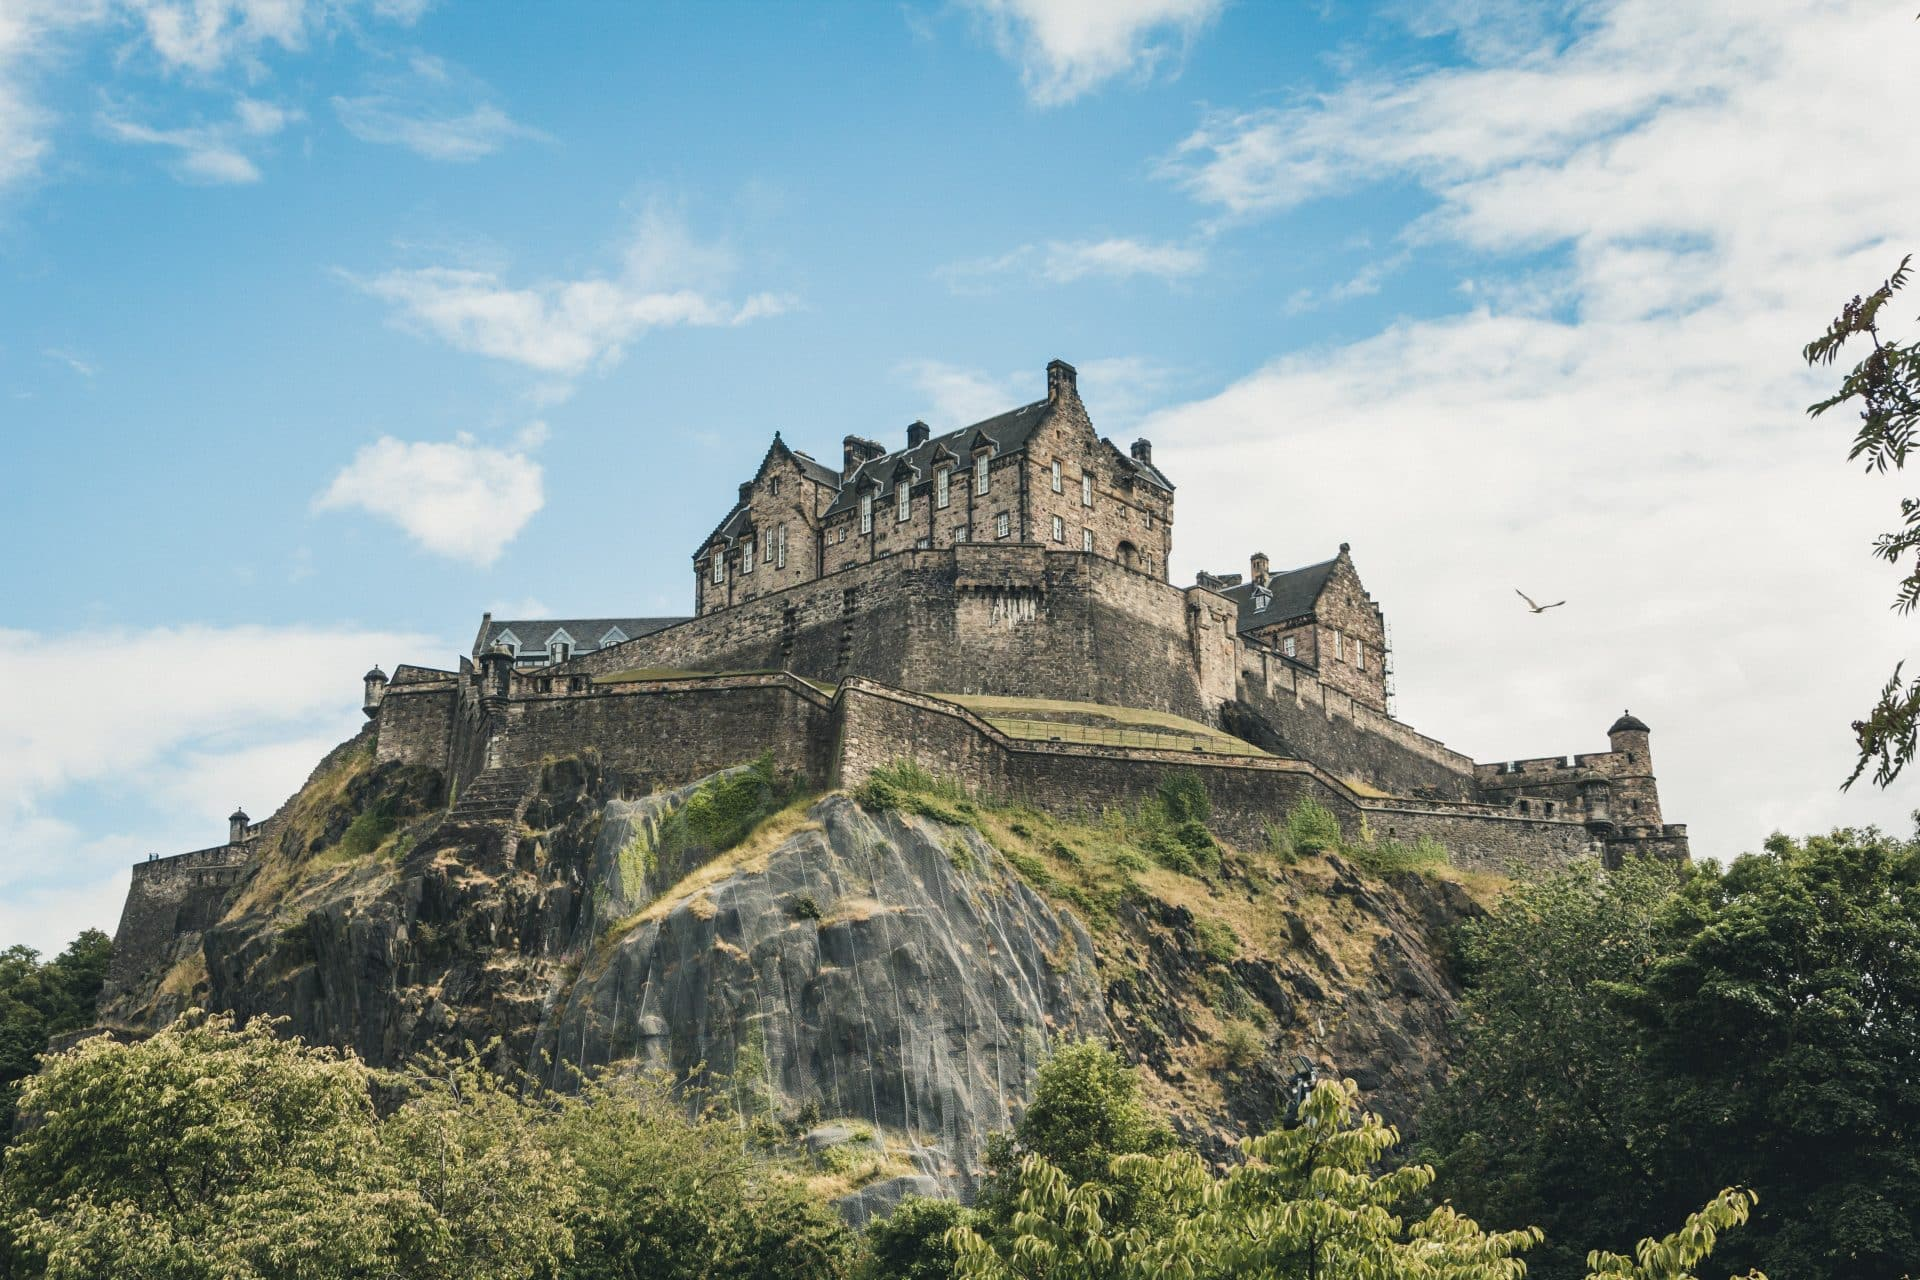 Things Edinburgh is famous for include Edinburgh Castle